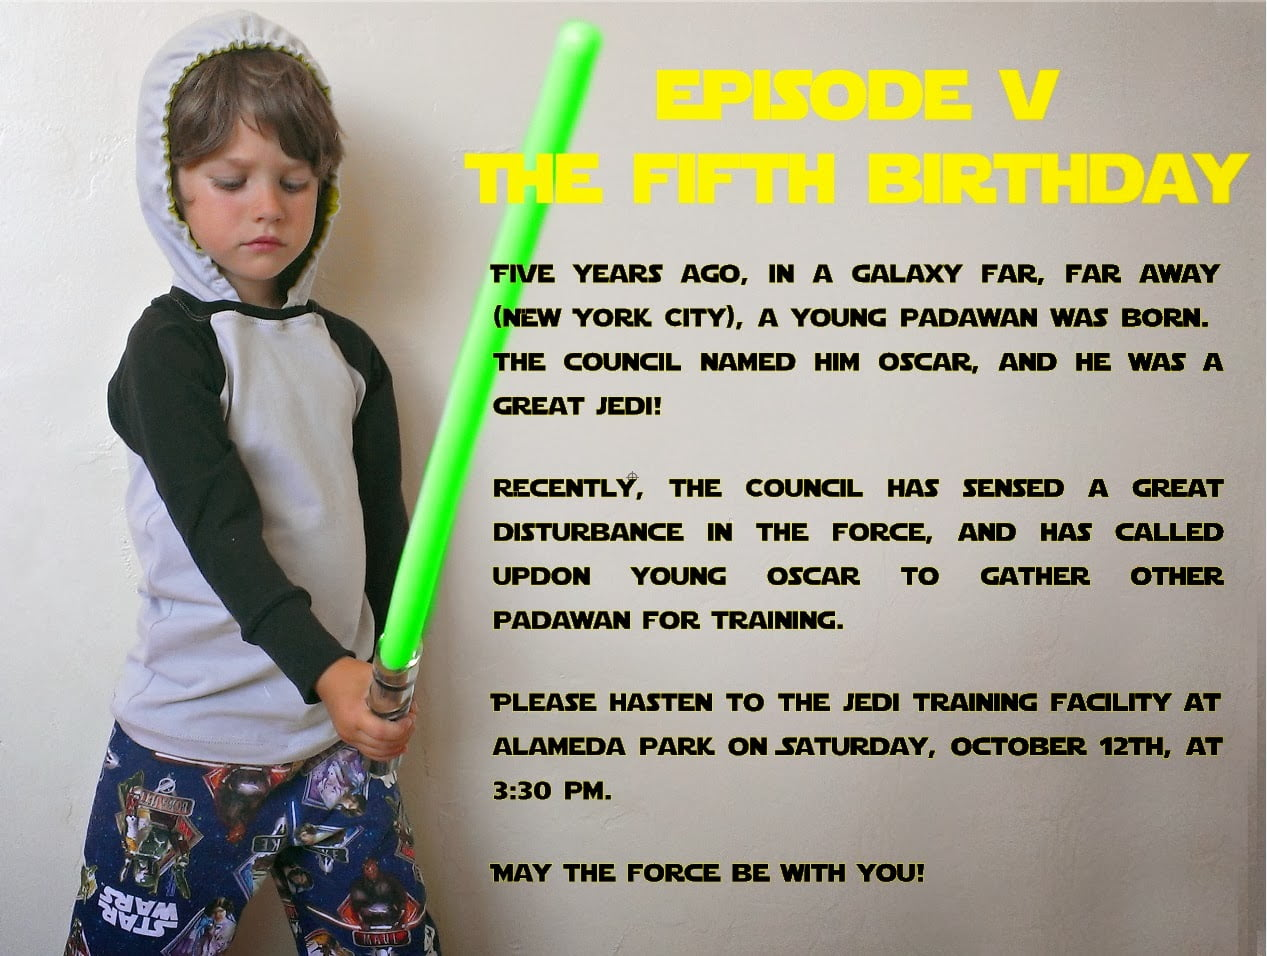 Star wars card birthday promo invitations